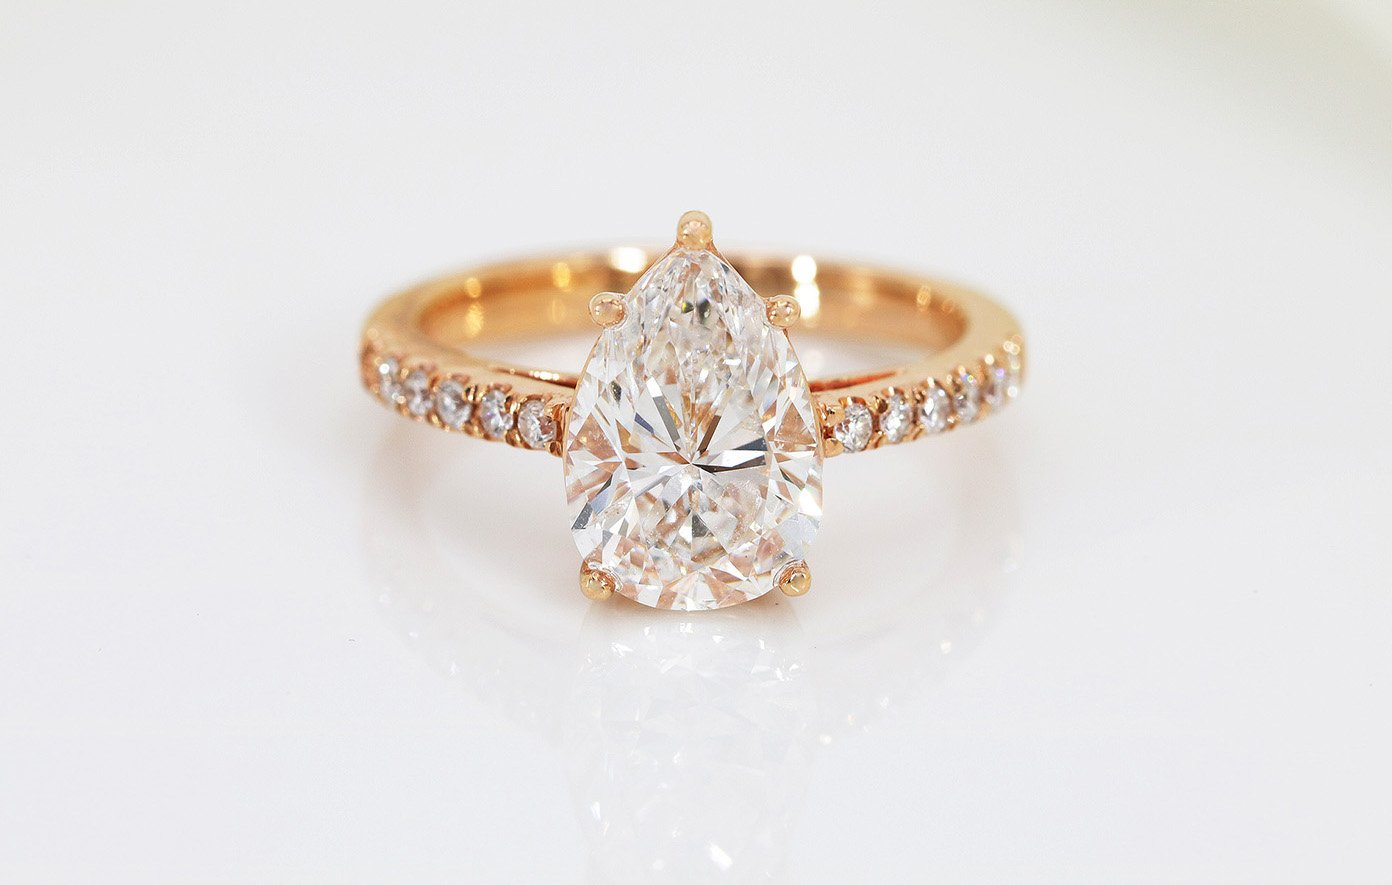 A diamond ring designed and crafted by Orient Atelier